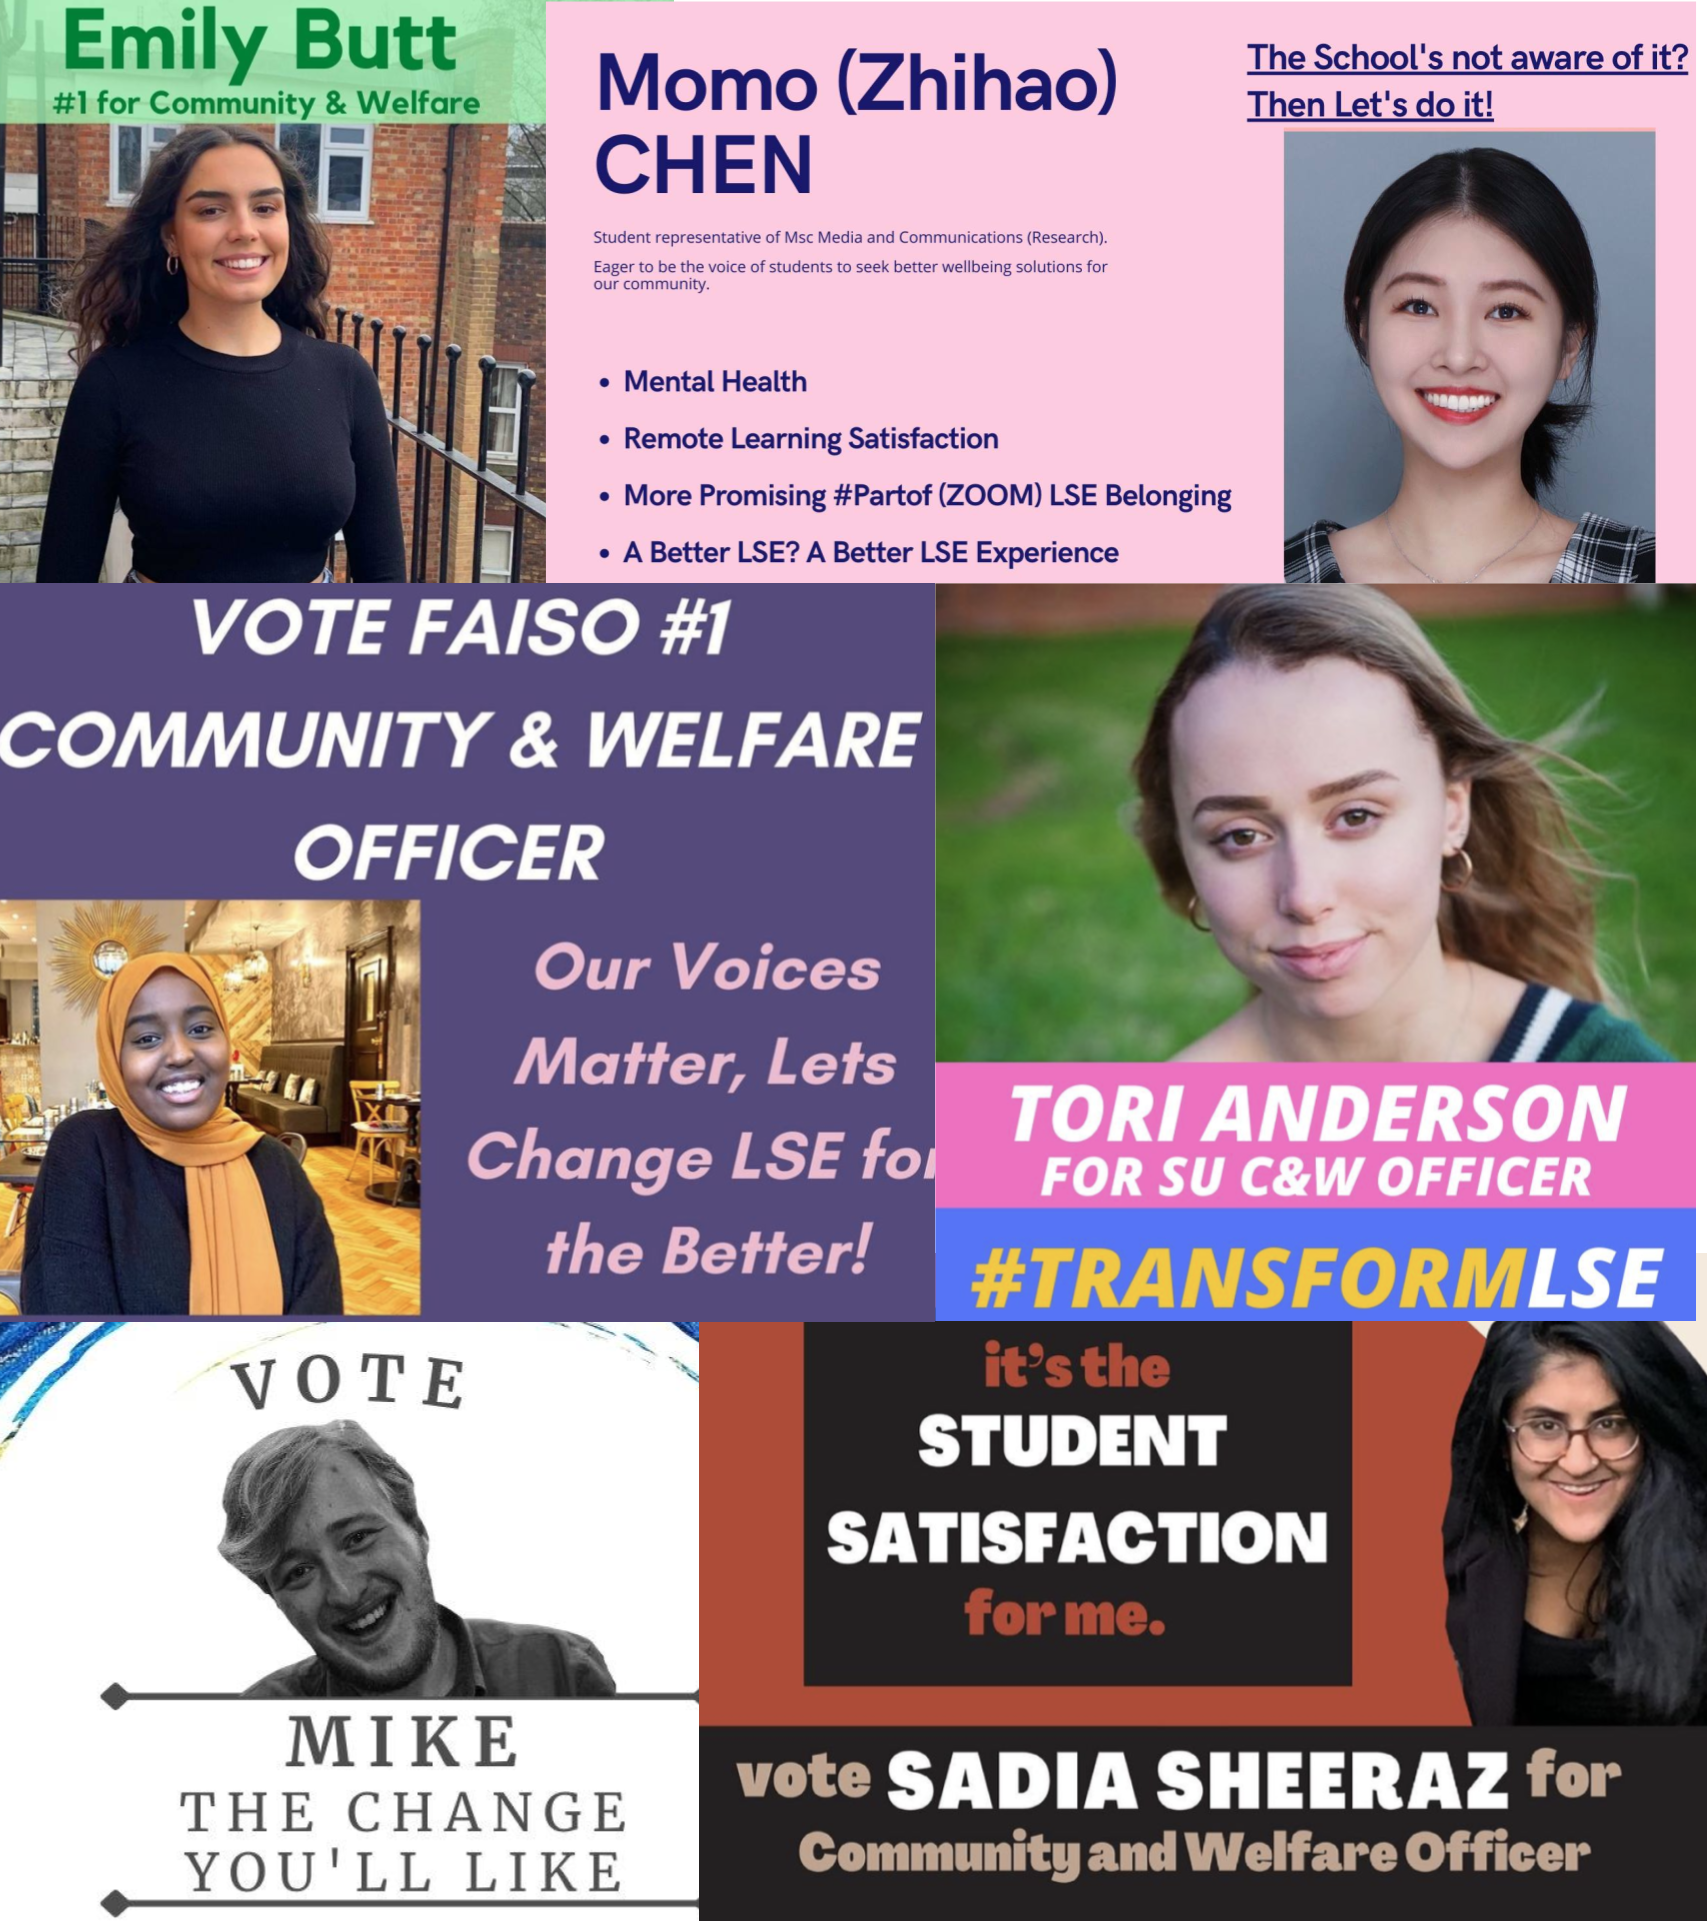 What differentiates the Community and Welfare Officer candidates running in the SU's election?